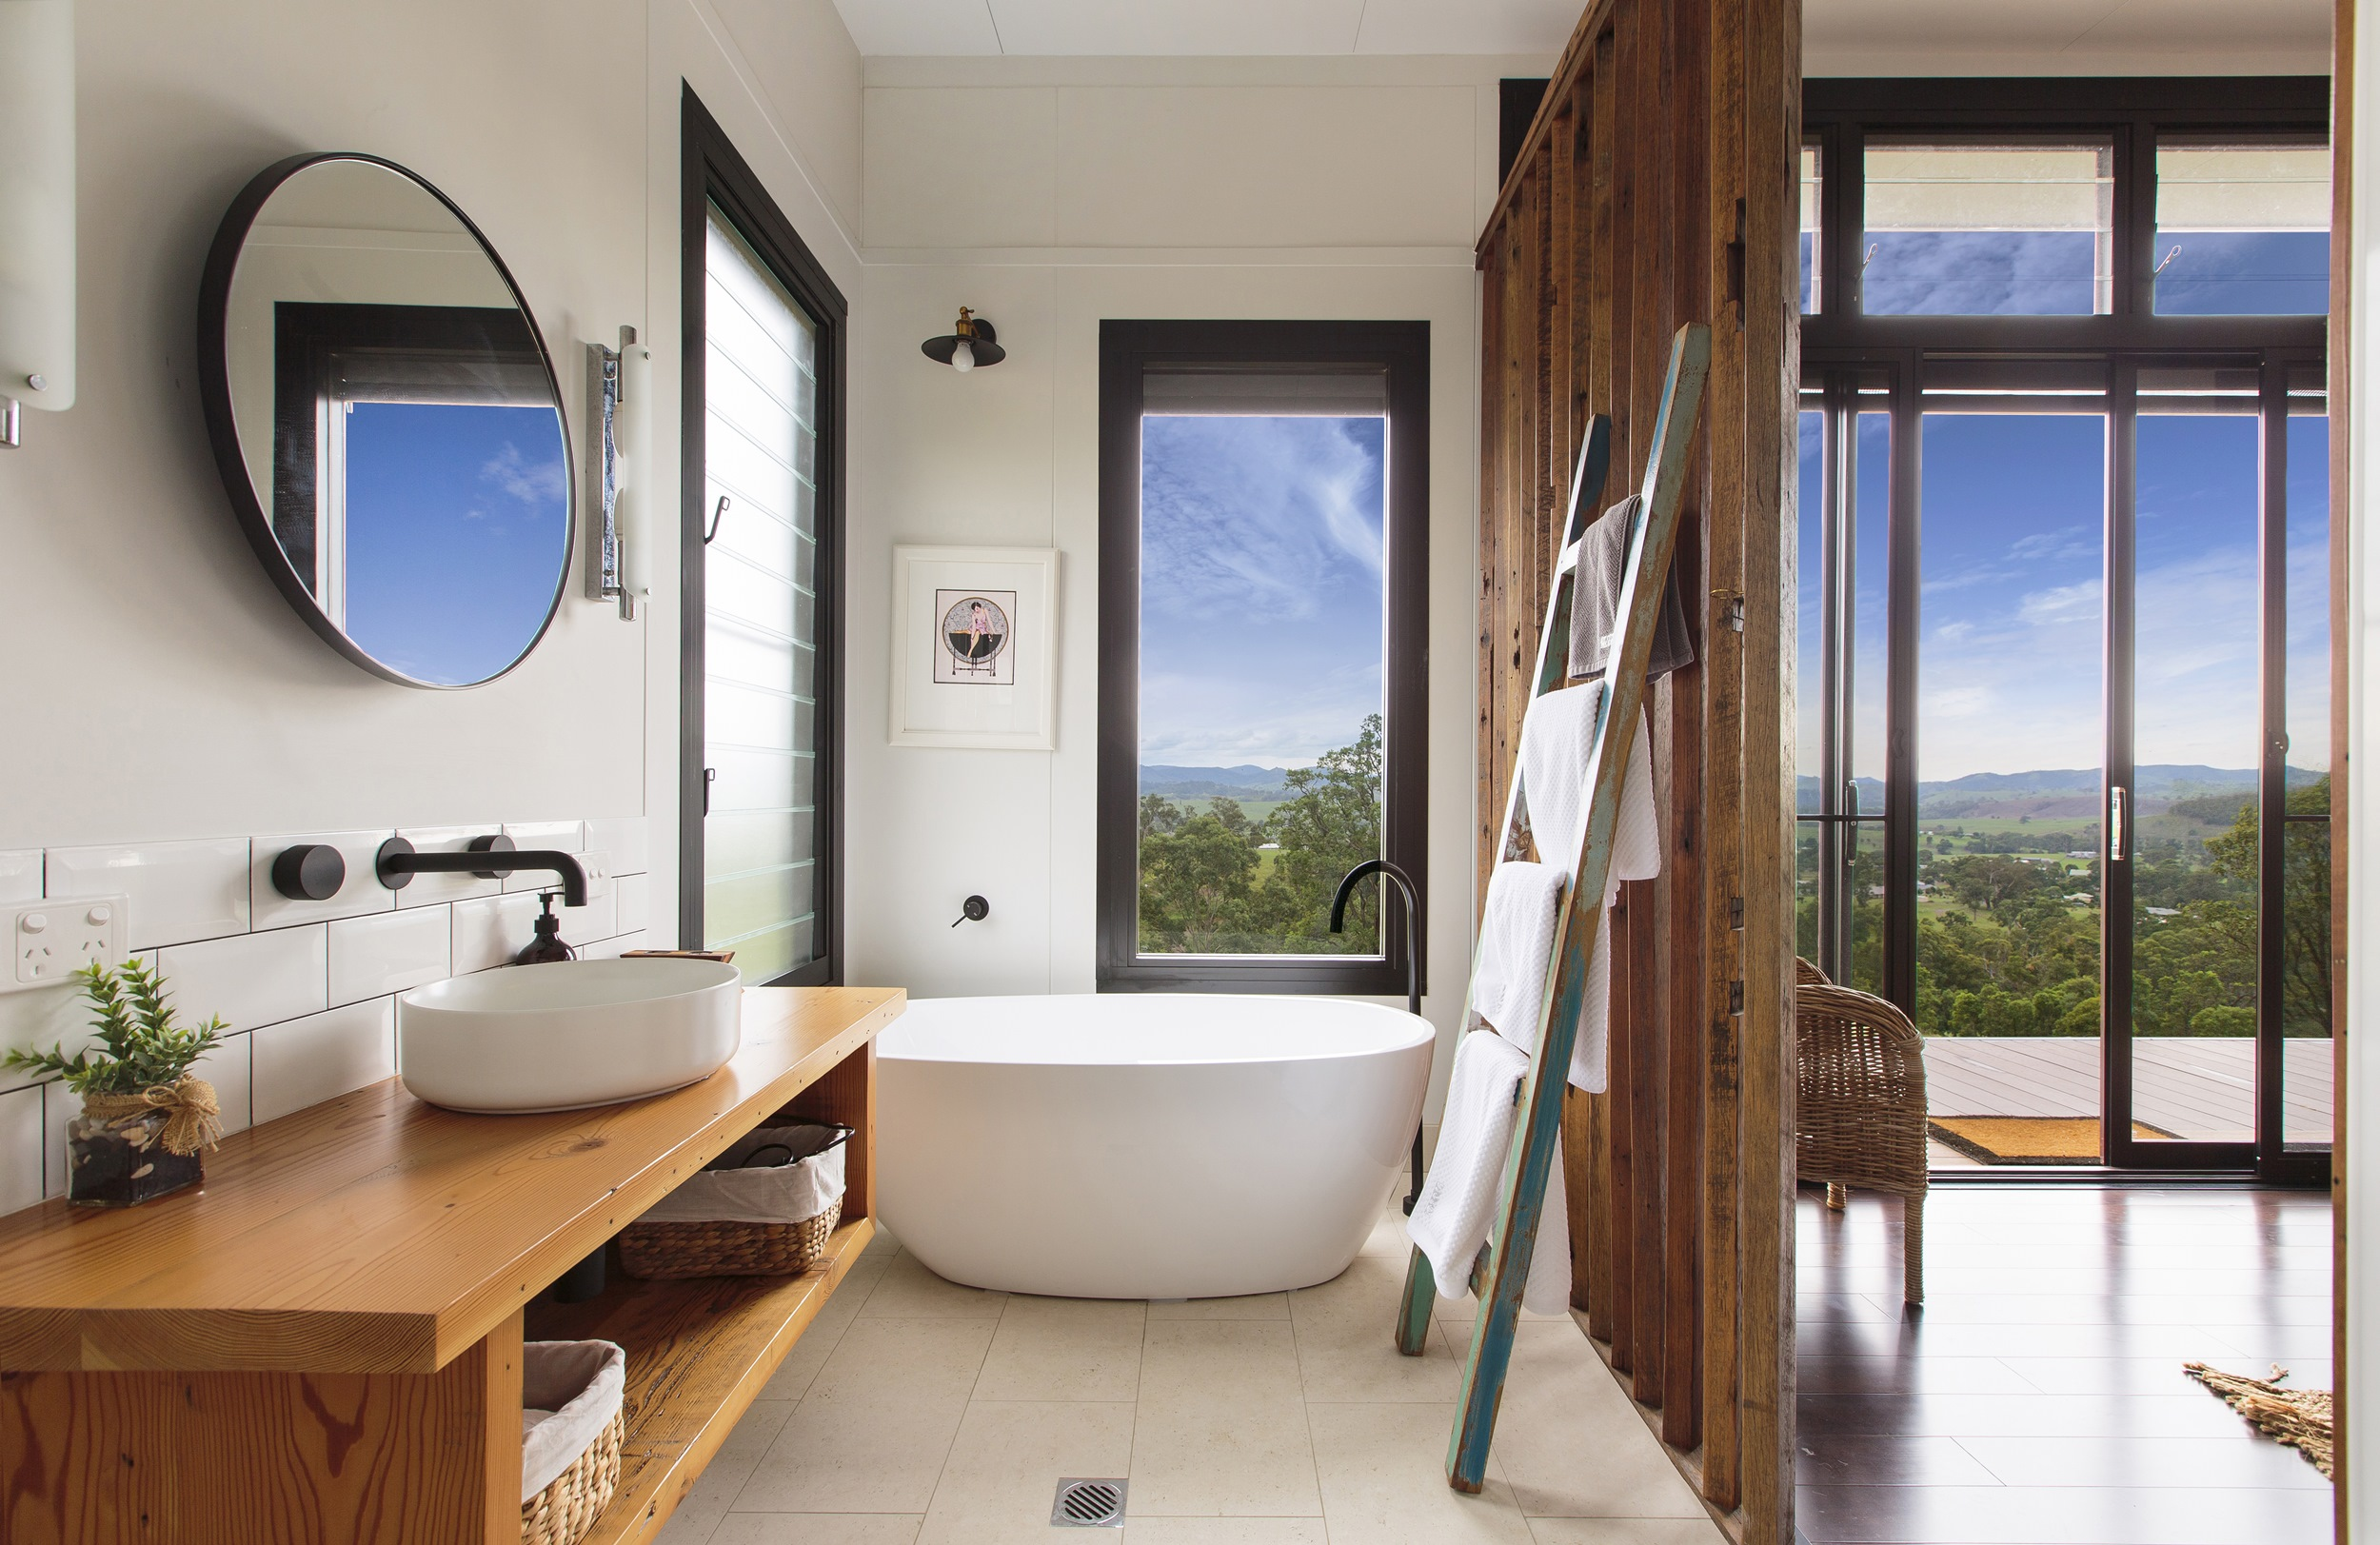 Glamorous bathroom with views